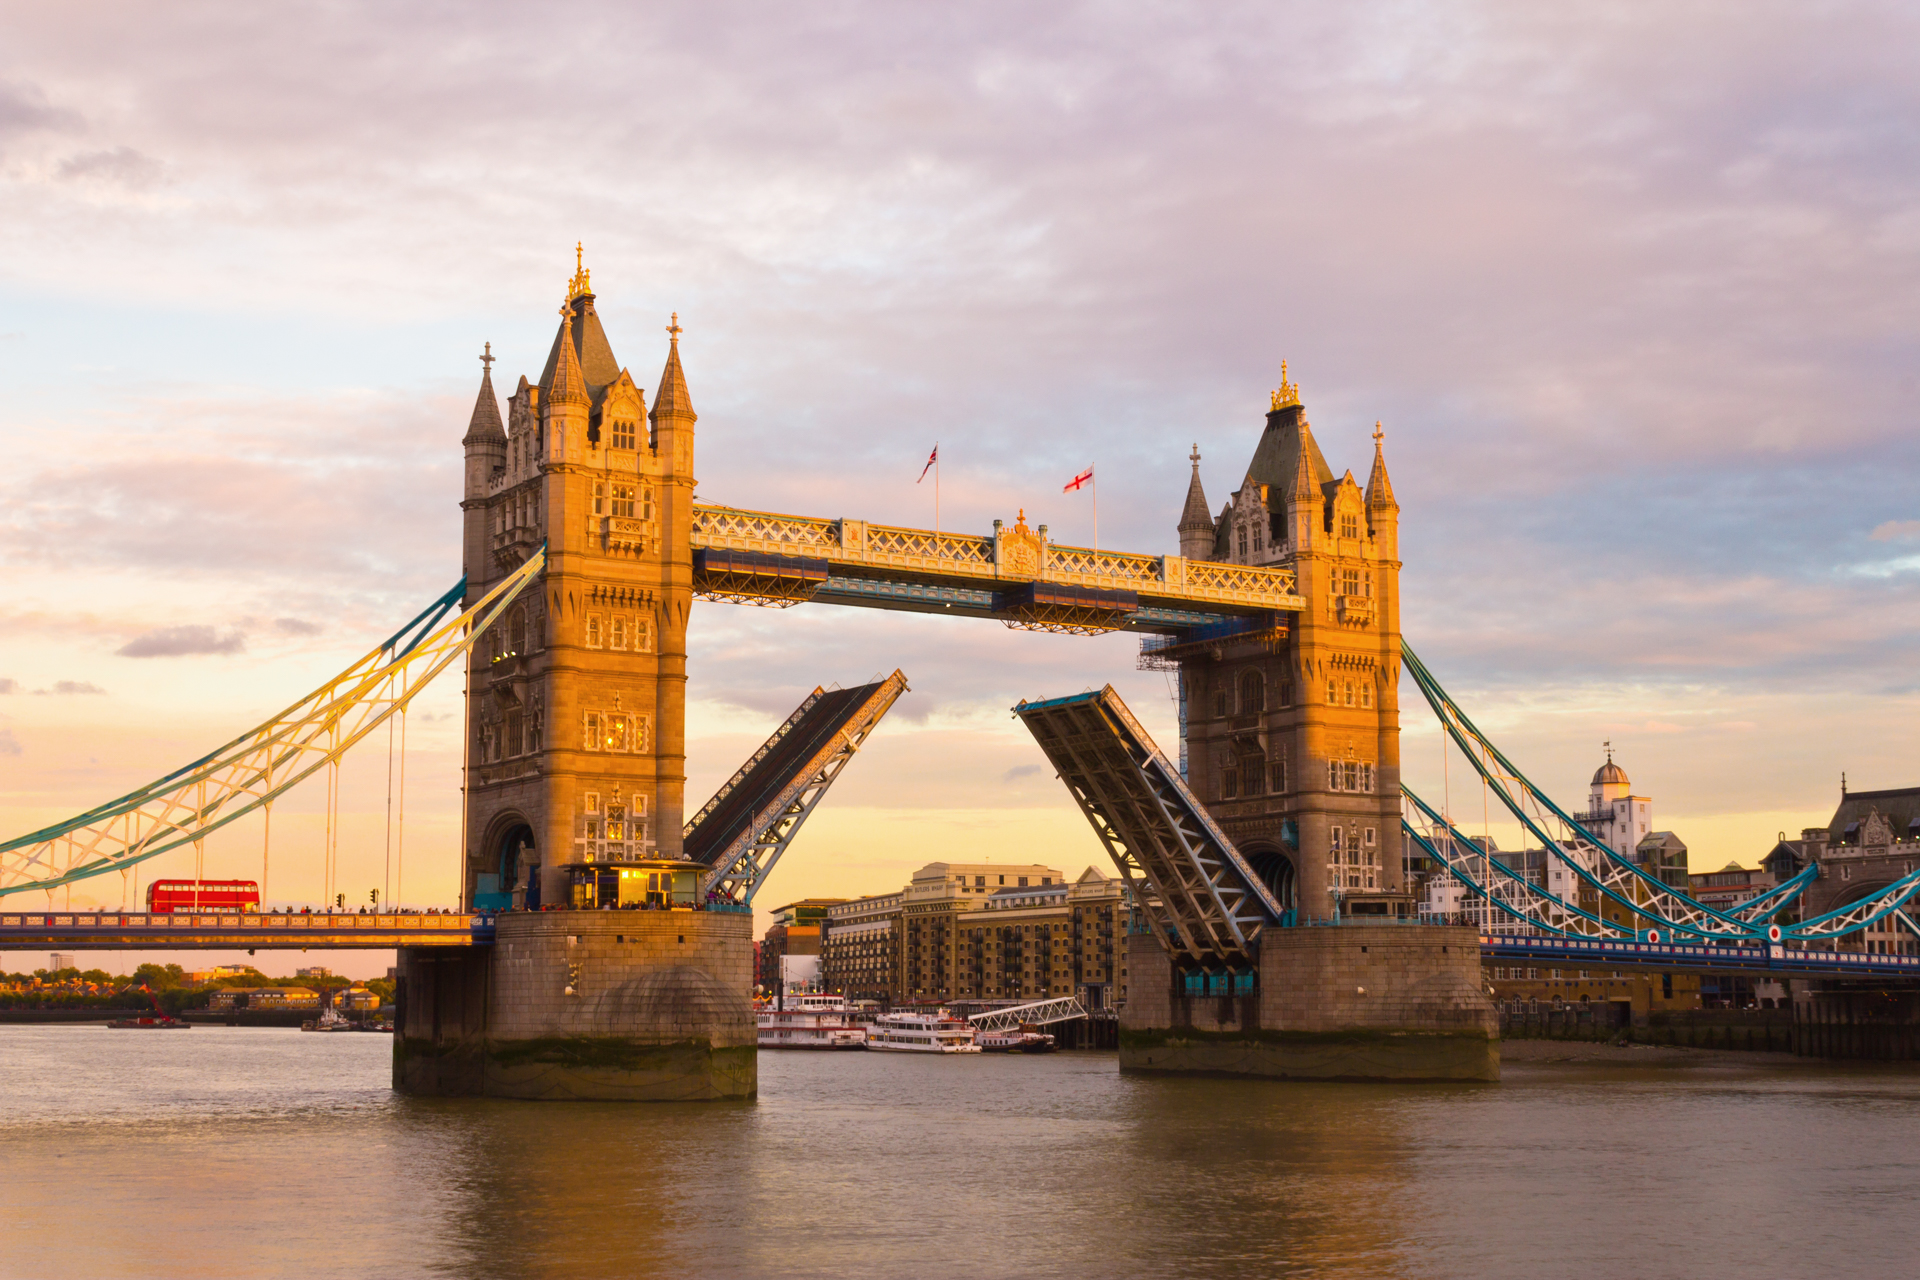 Tower Bridge at dusk in sRGB color space